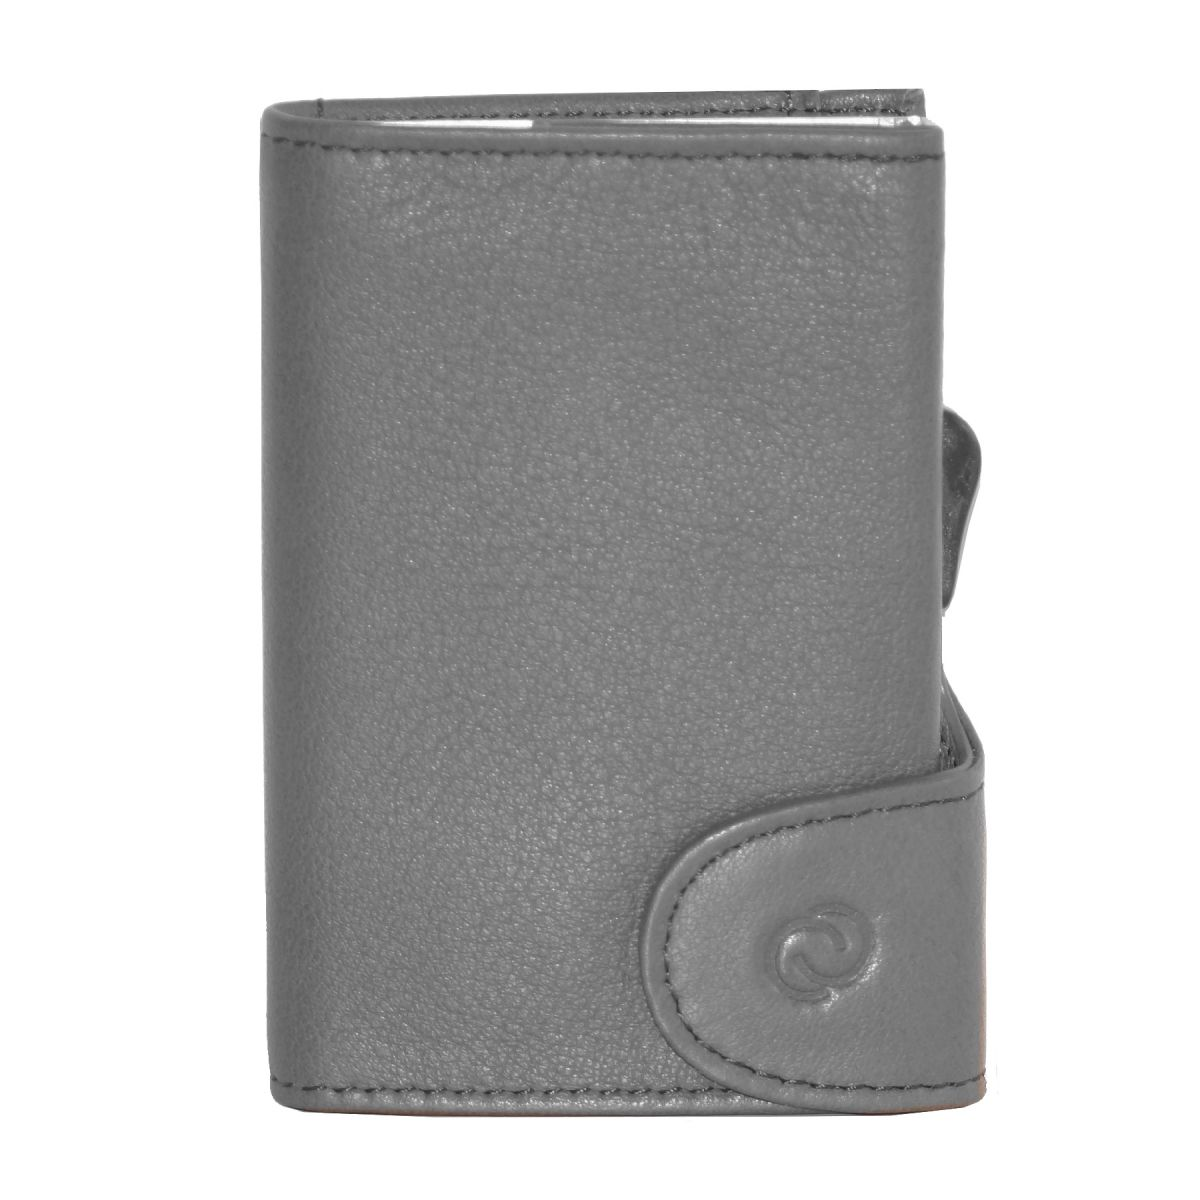 Aluminum Card Holder with PU Leather - Grey